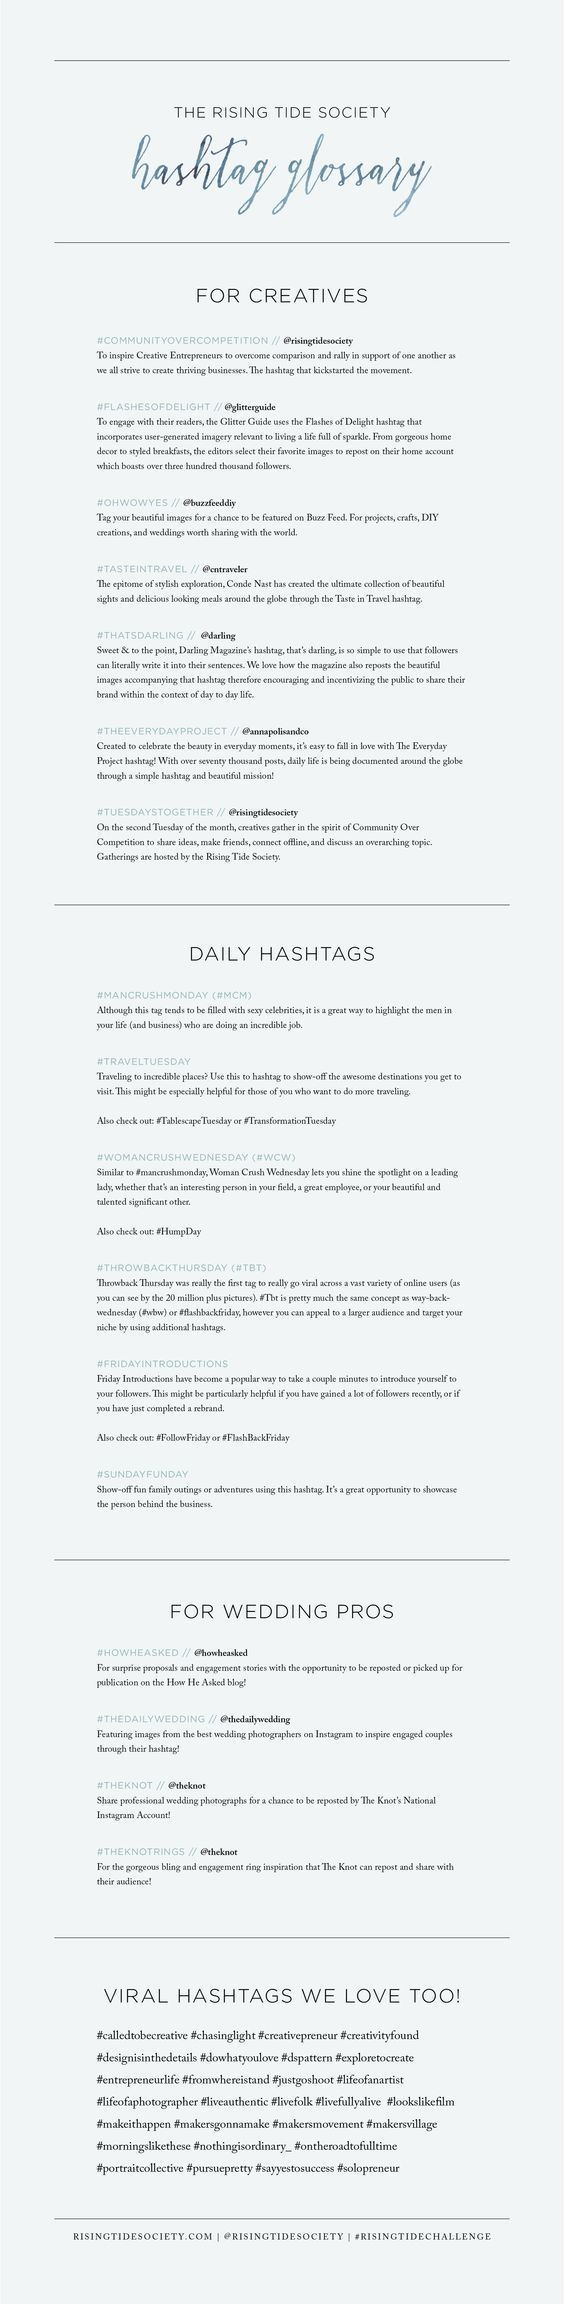 Social Media Cover Letter Cool 57 Best Hash Tags Images On Pinterest  Social Media Marketing Decorating Inspiration